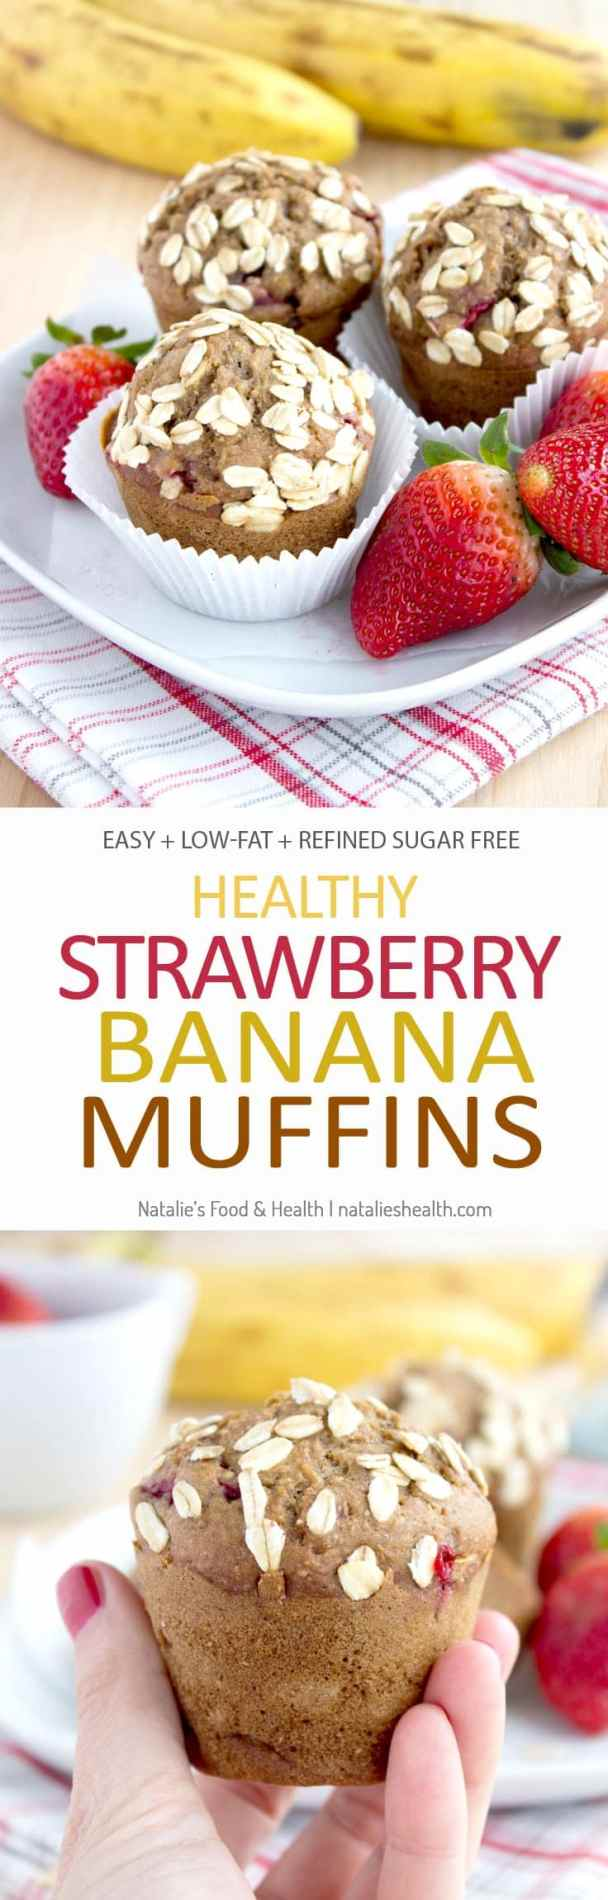 Super sweet and moist, perfectly fragrant Strawberry Banana Muffins made with all HEALTHY ingredients, refined sugar-free, packed with fresh strawberries. These muffins are easy to make yet delicious dessert that truly screams Spring. CLICK to read more or PIN for later! #healthy #easy #muffin #sugarfree